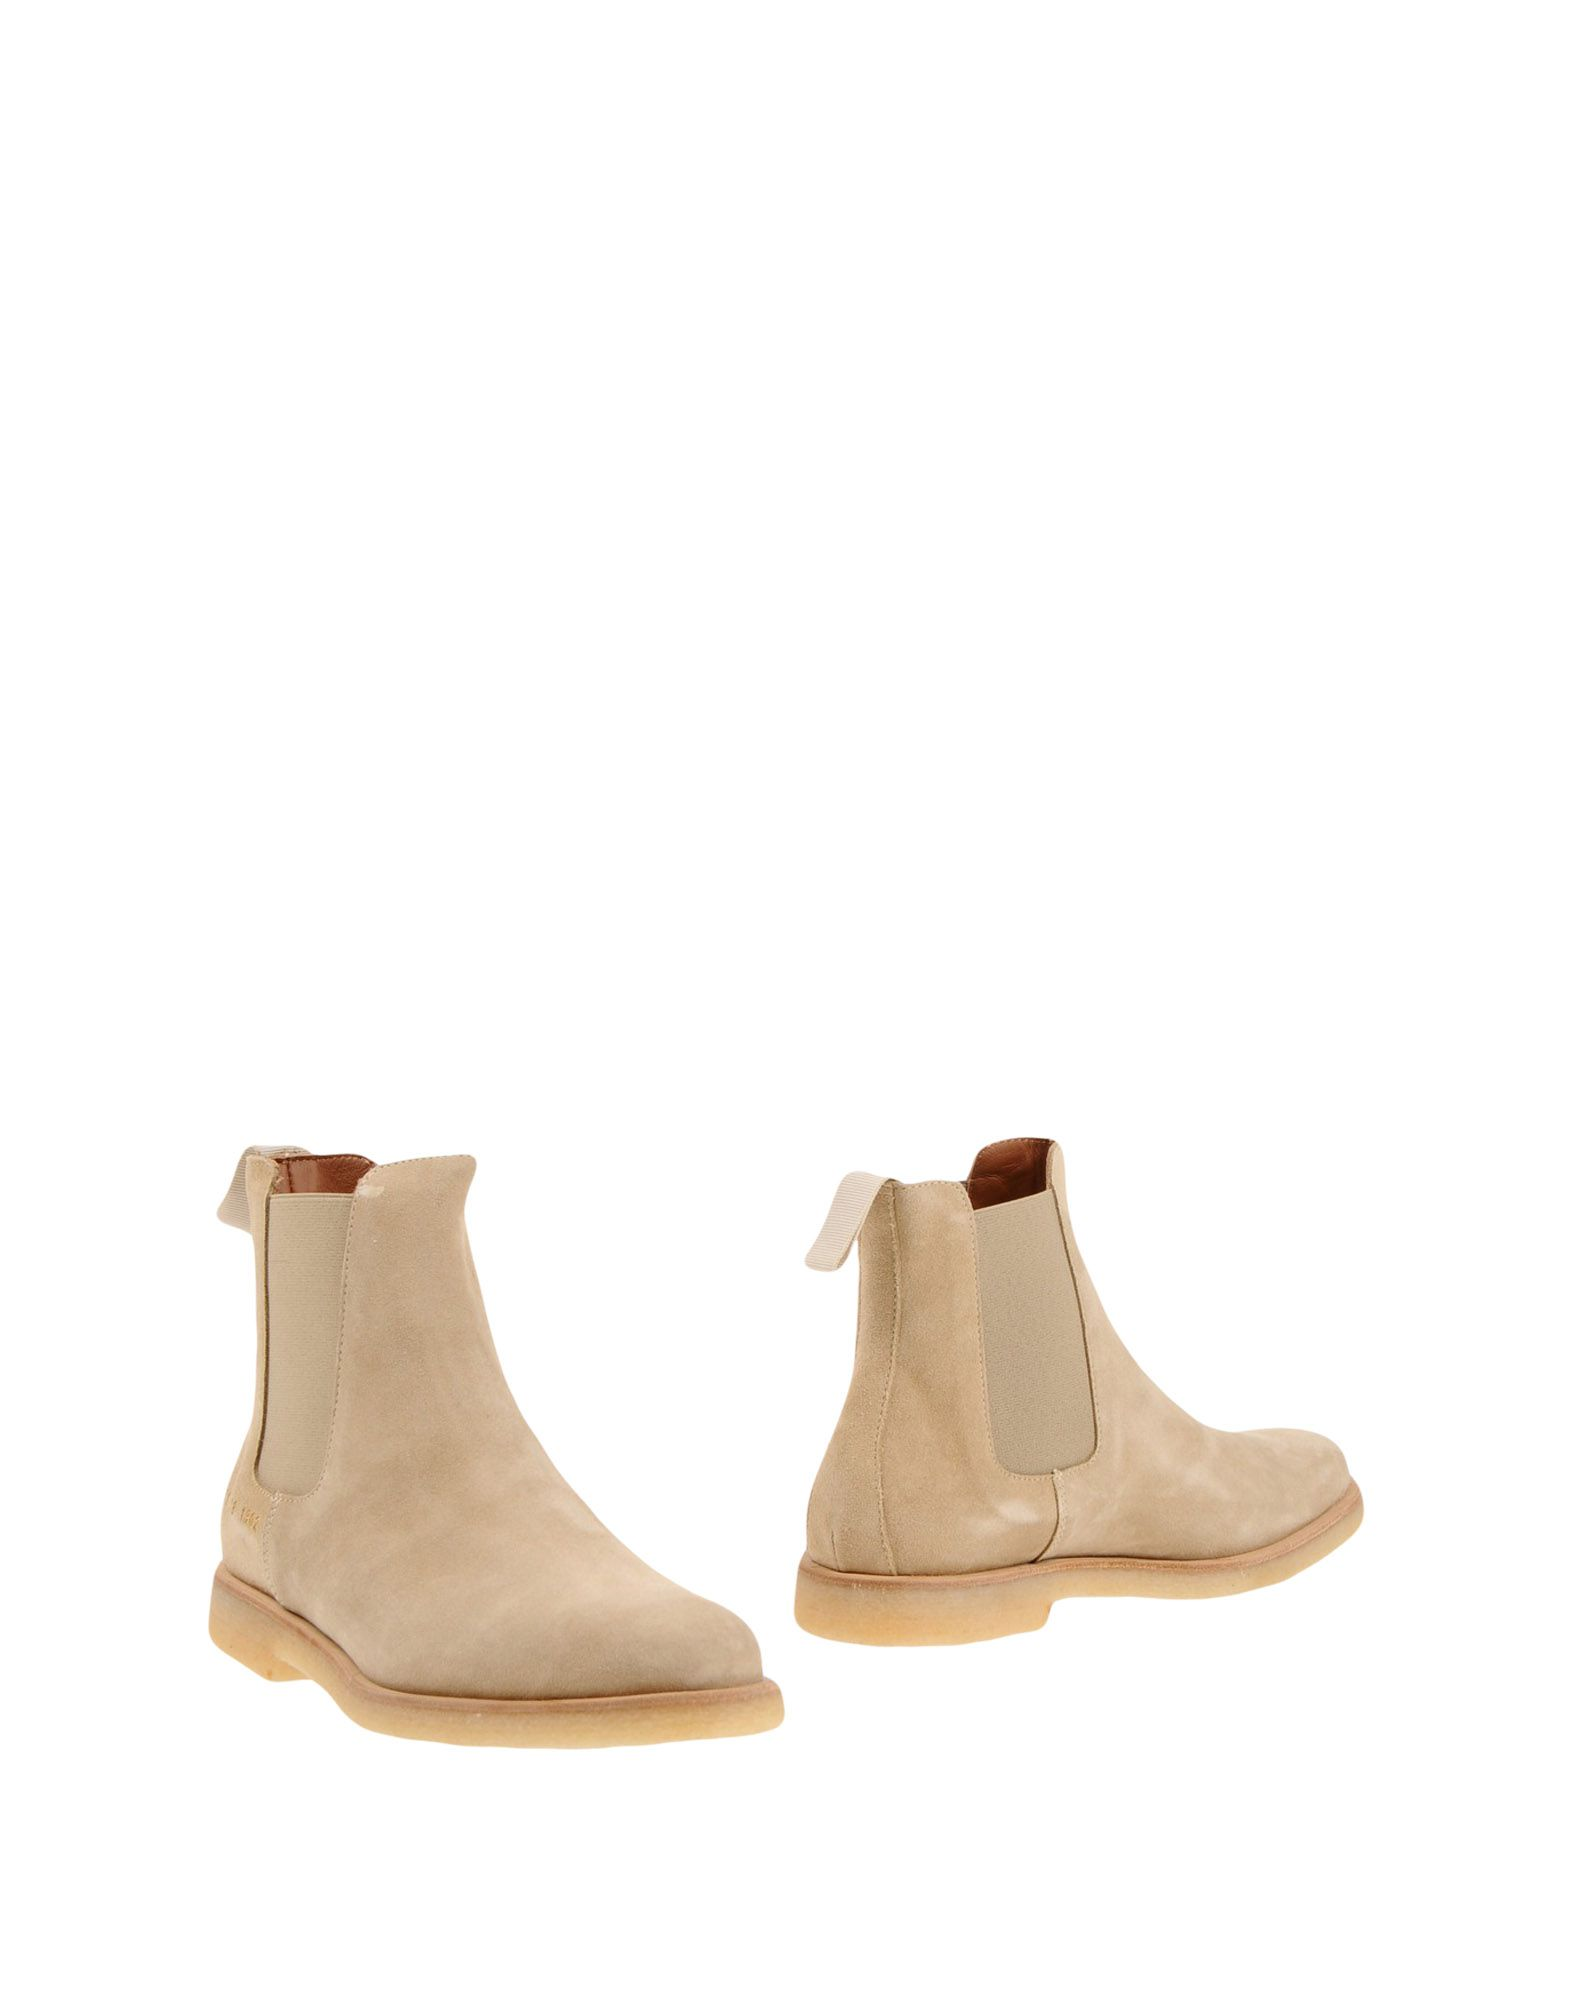 WOMAN by COMMON PROJECTS Полусапоги и высокие ботинки managing projects made simple